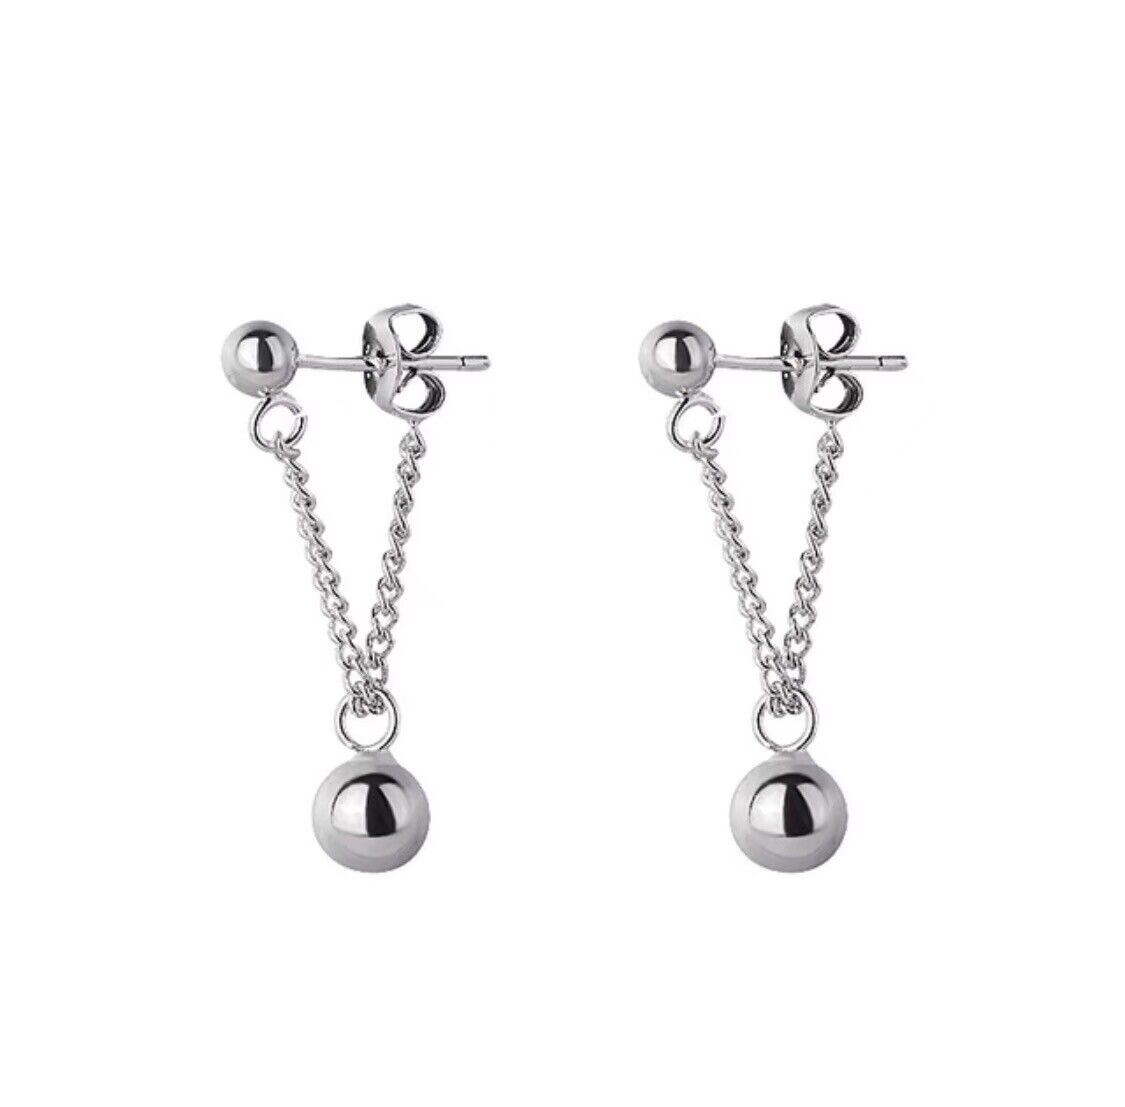 Jewellery - Mini Round Beads Drop Earrings Stud 925 Sterling Silver Women's Jewellery Gift.